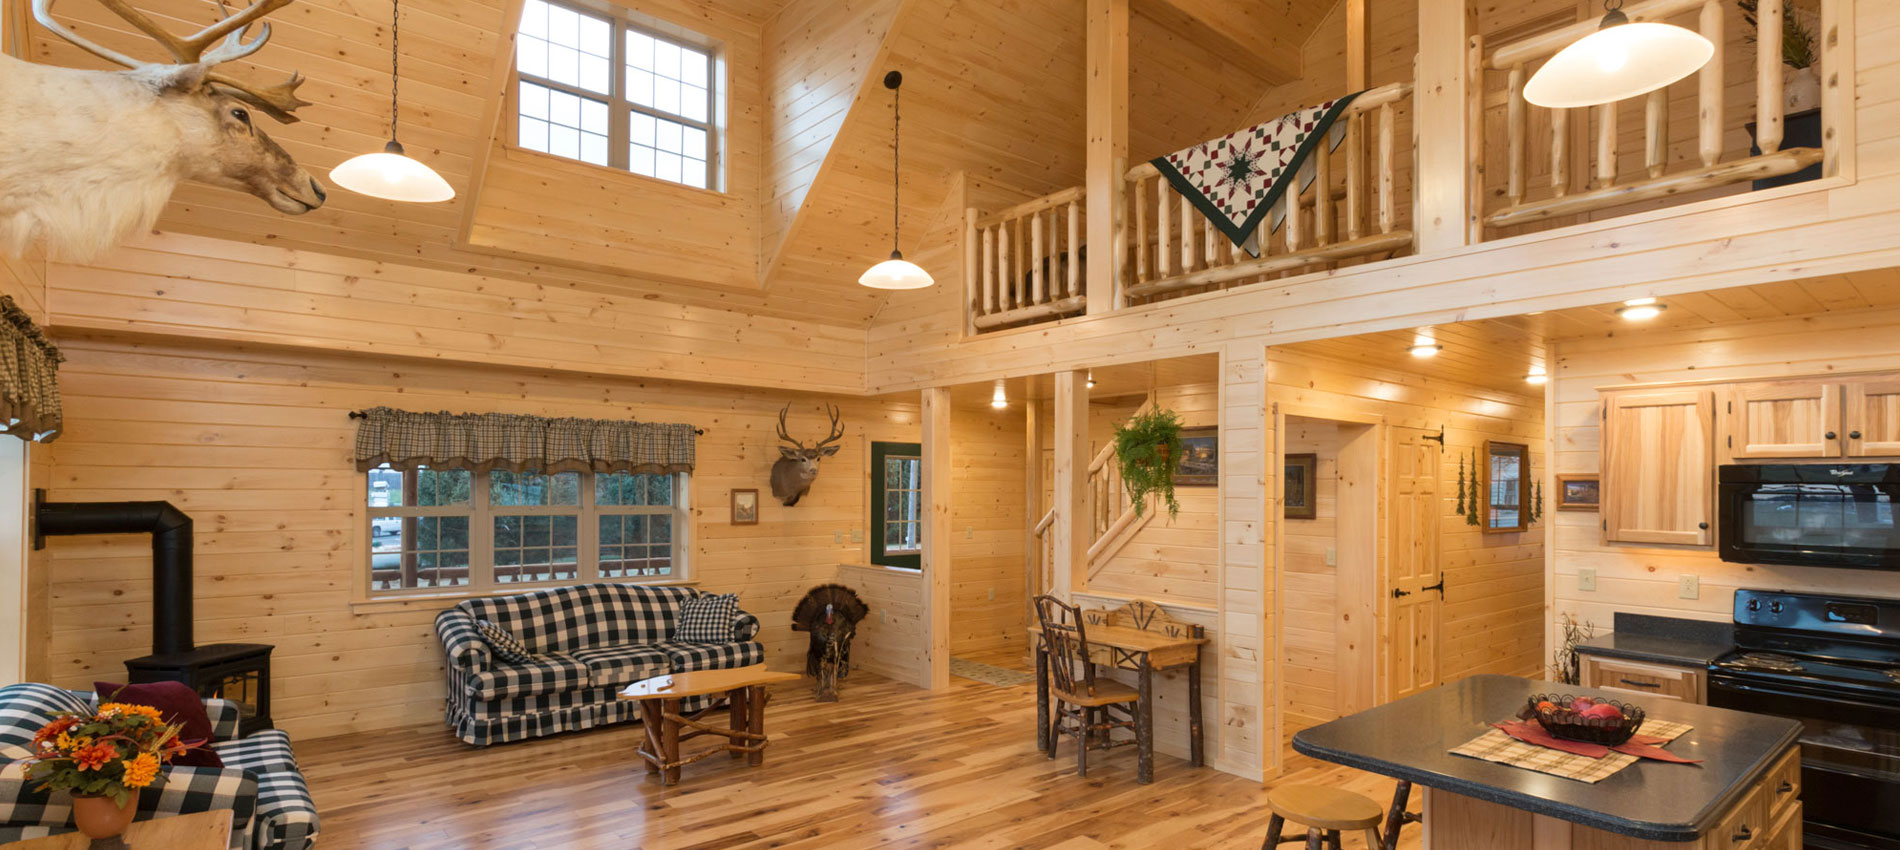 interior of amish log cabins for sale by zook cabins